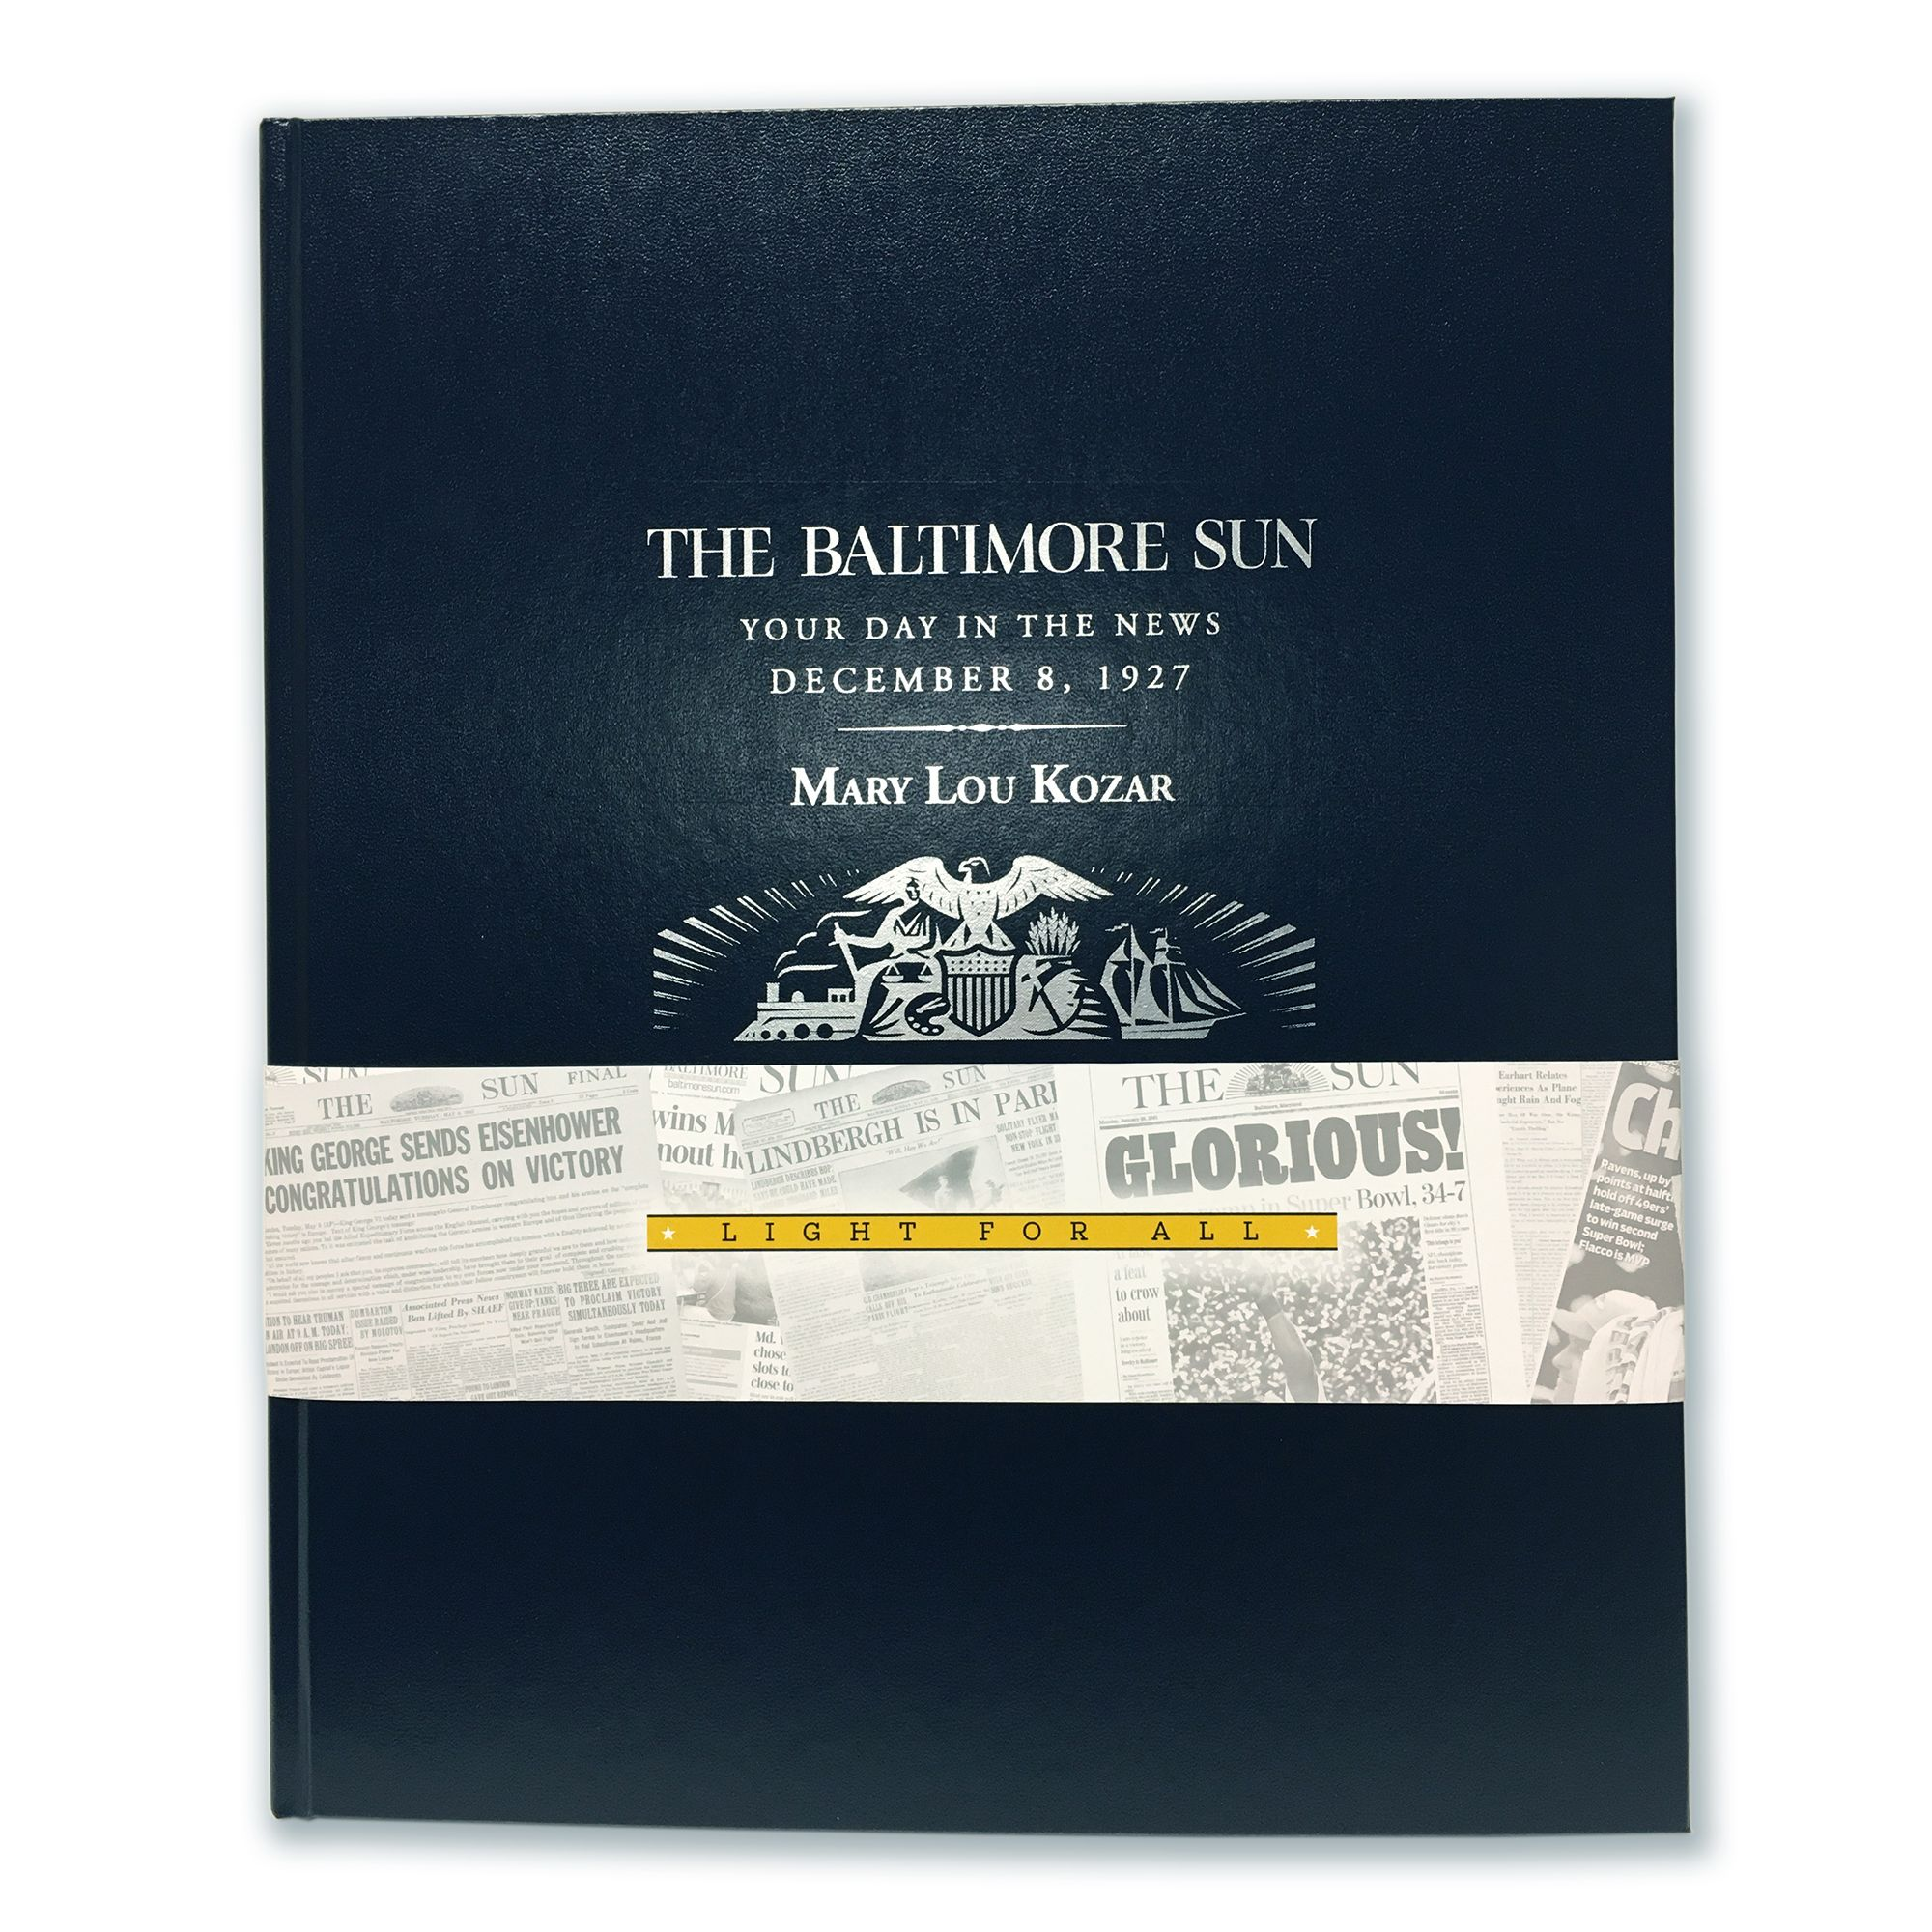 The Baltimore Sun Birthday Book